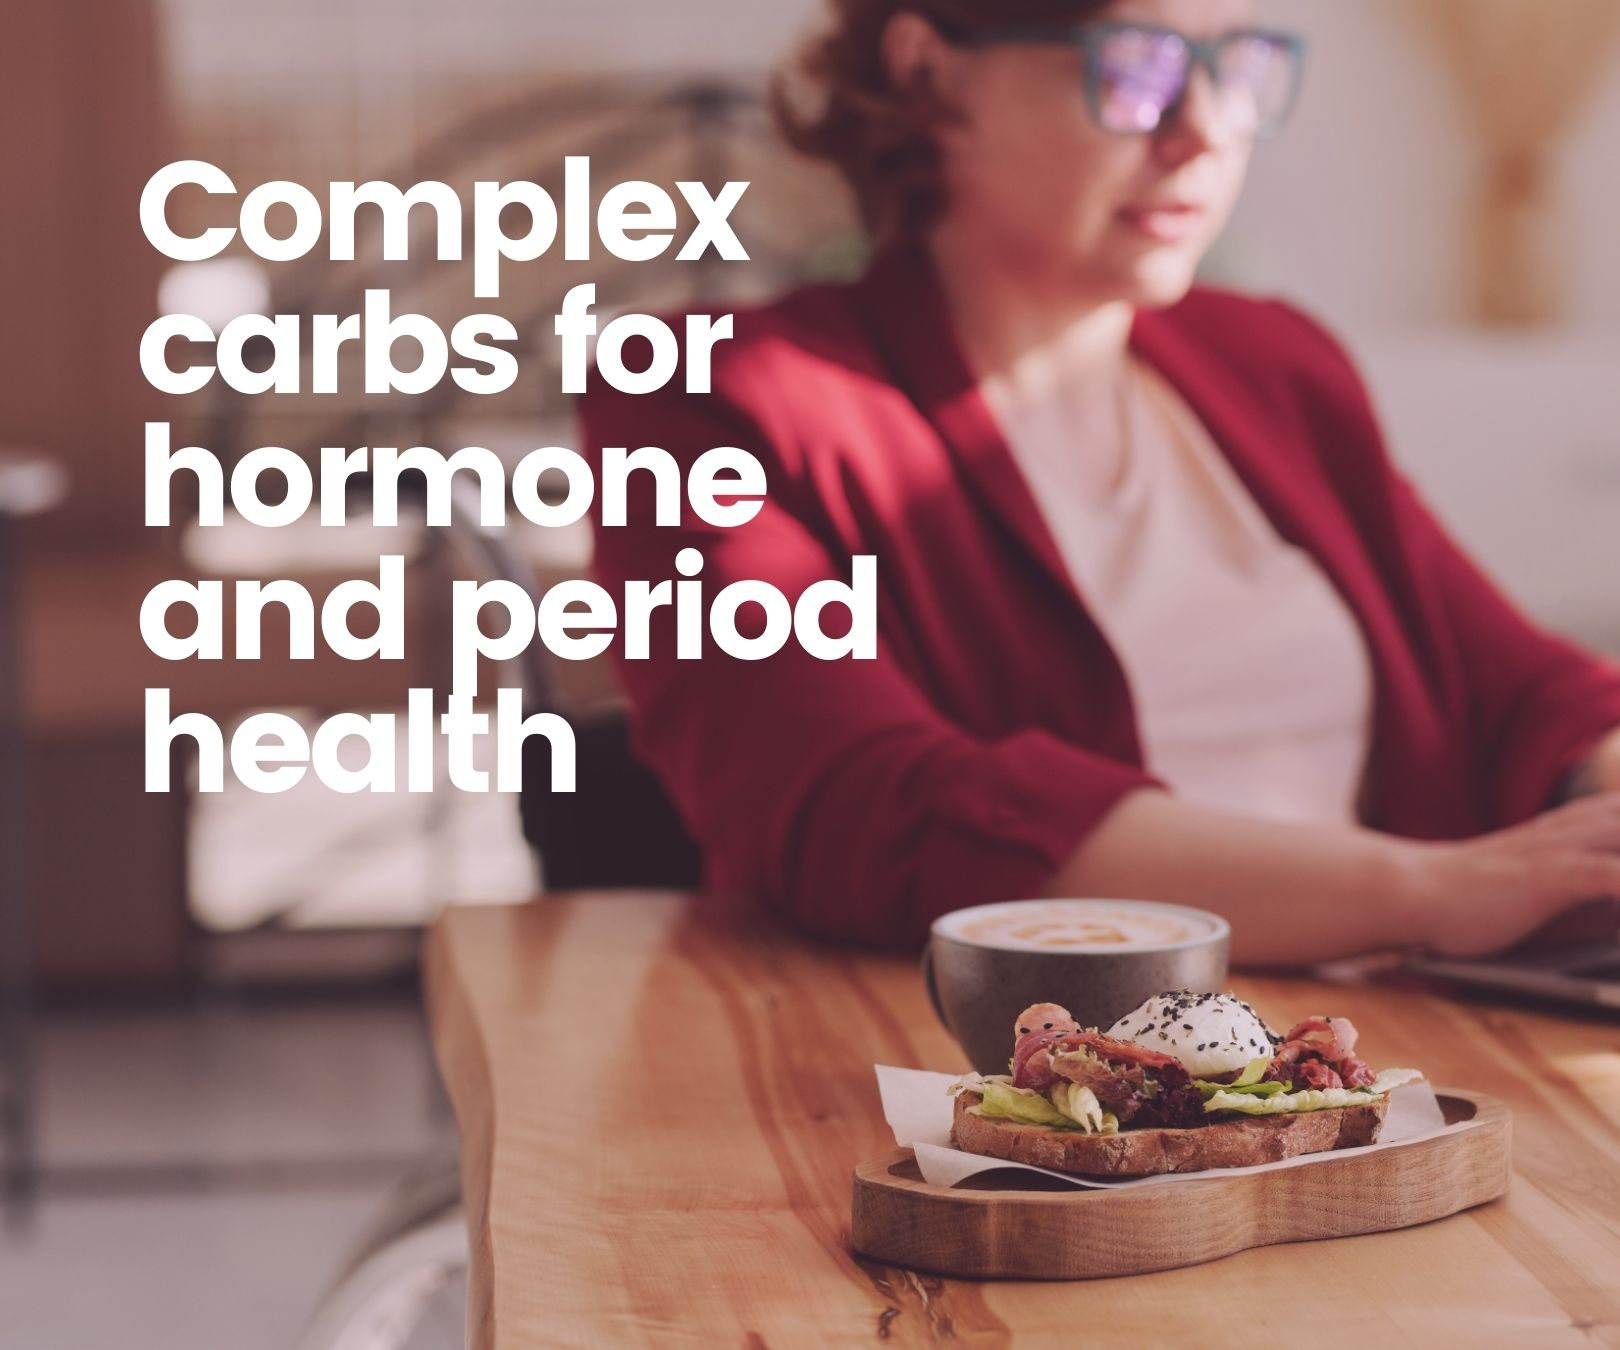 Benefits of complex carbohydrates for reproduction, hormone, and period health